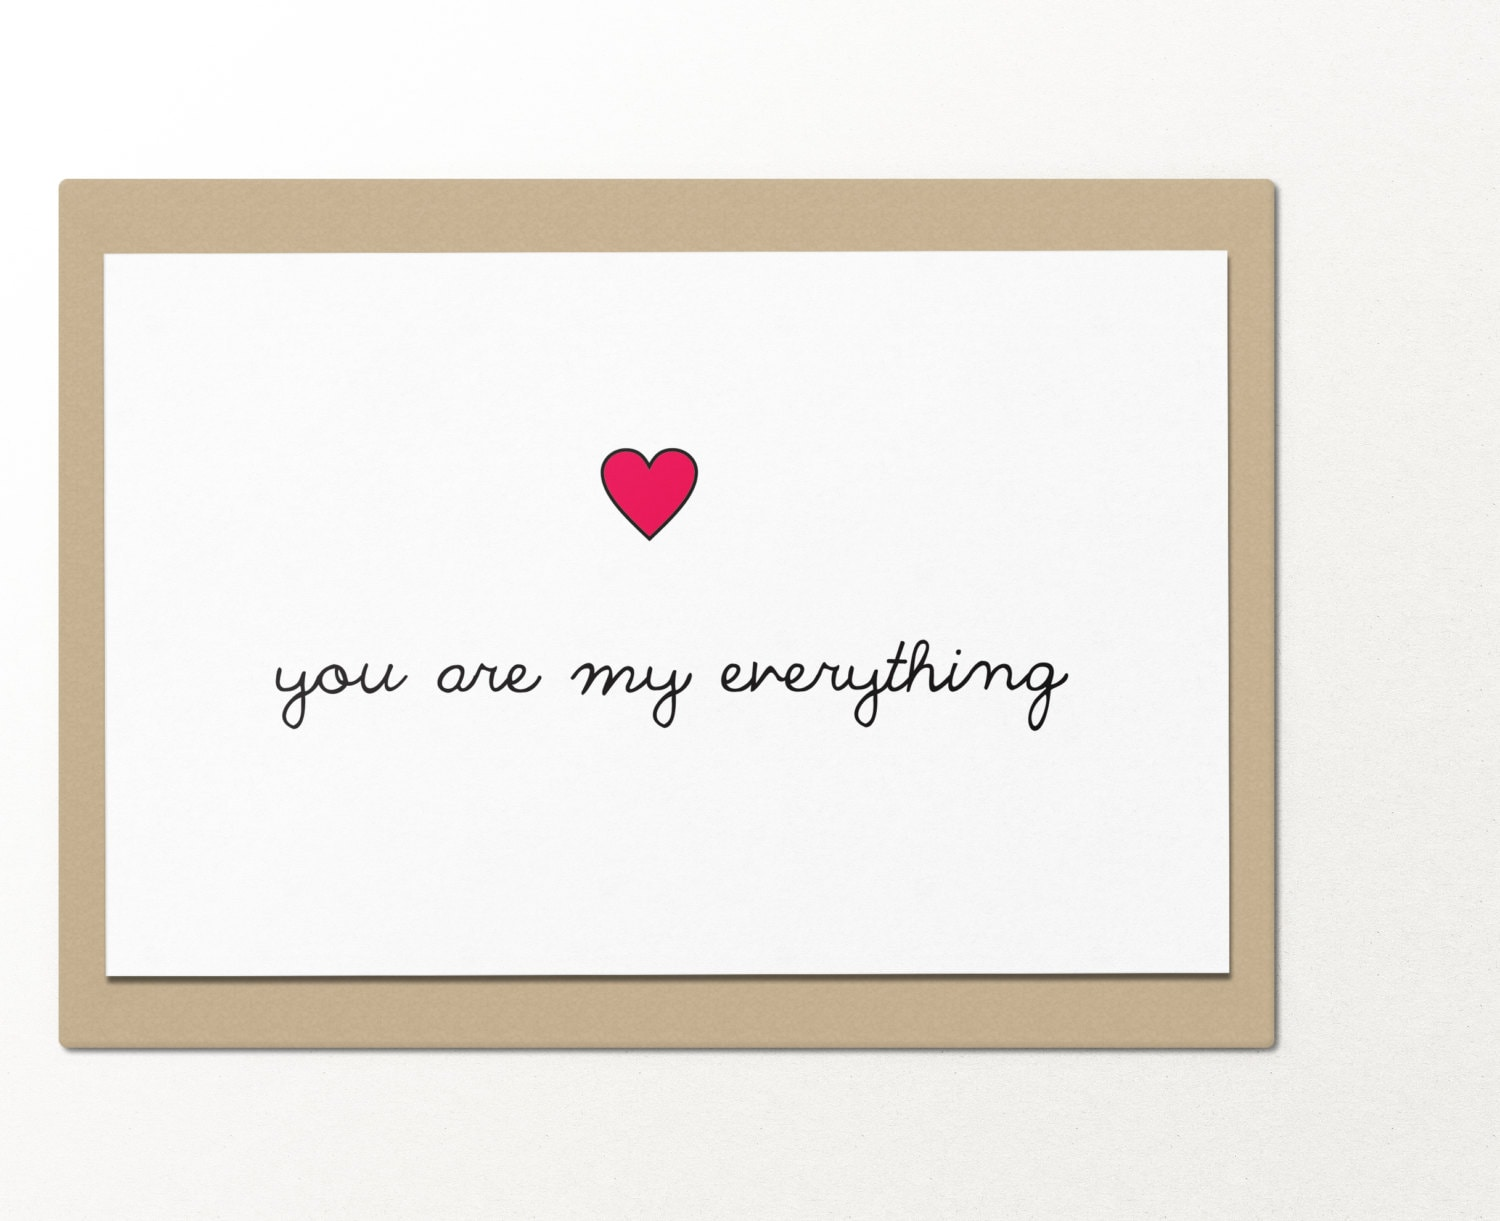 You Are My Everything Funny Greeting Cards Relationship Etsy